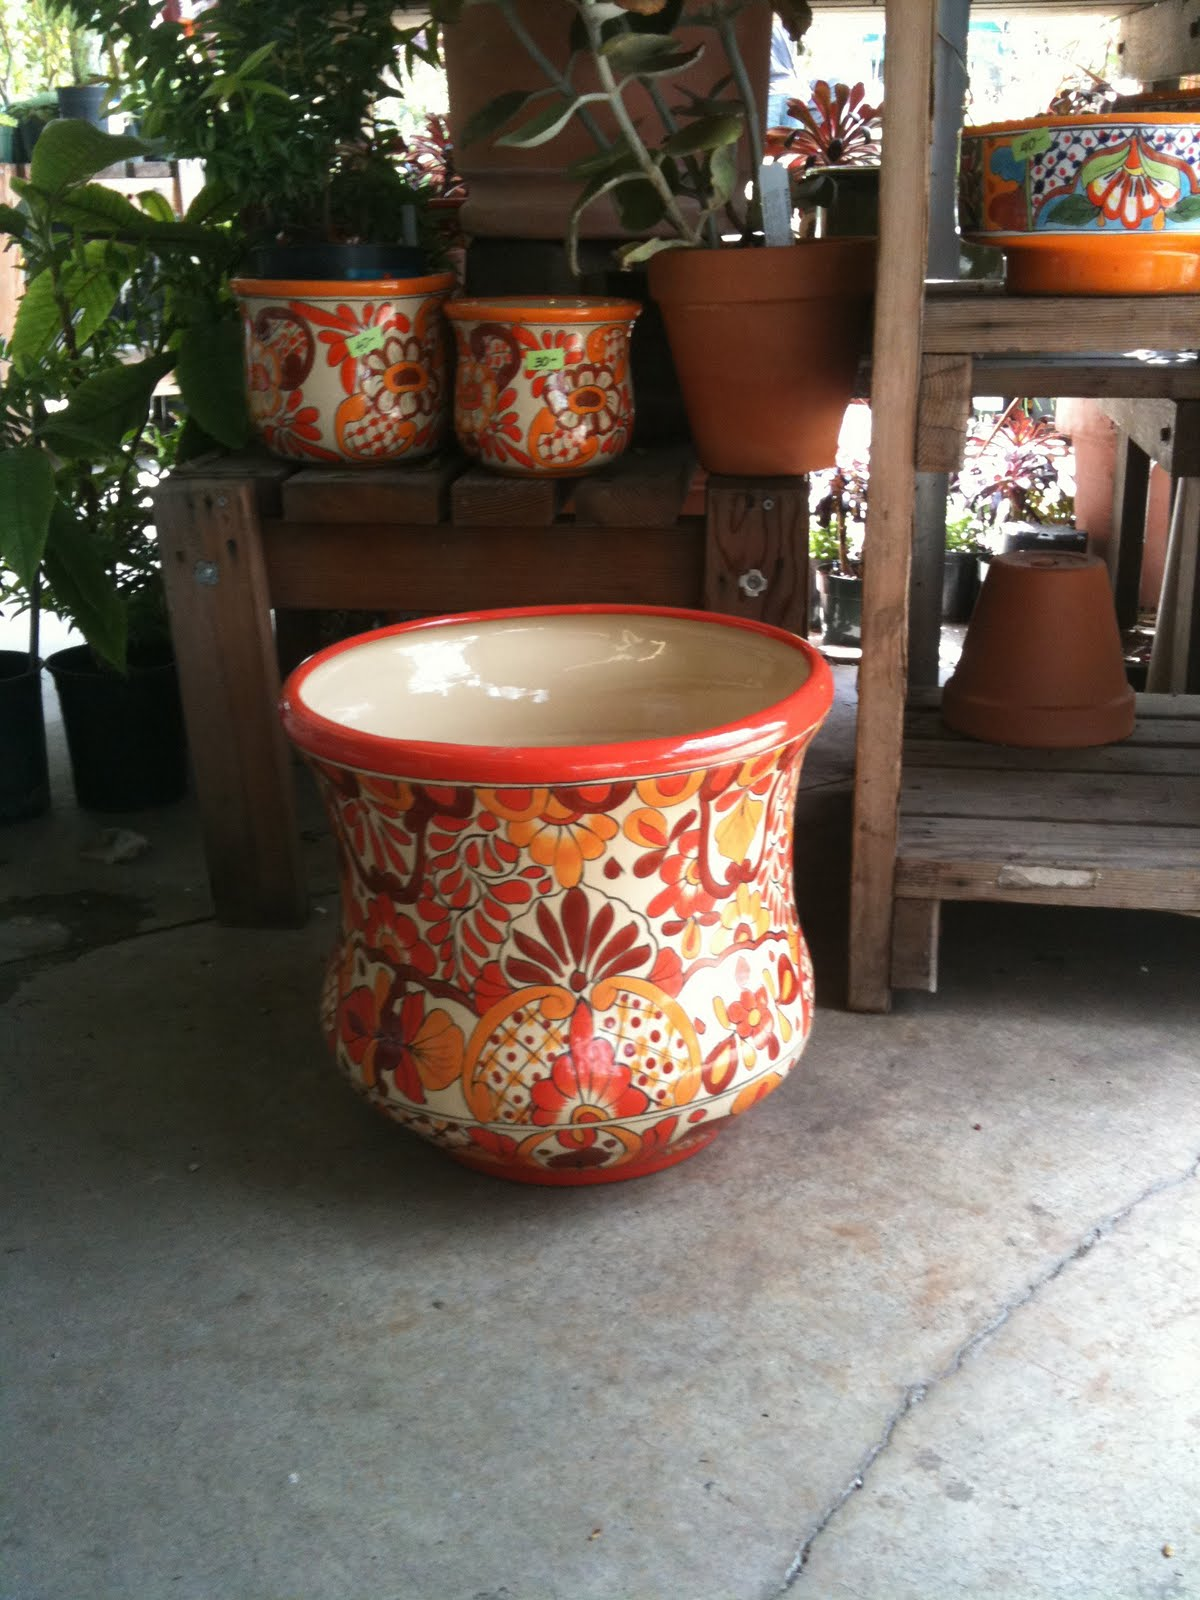 ... Pottery To Compliment The Spanish Style Houses Found In The Bay Area,  Or Classic Urns To Compliment More Formal Italian And French Garden Styles.